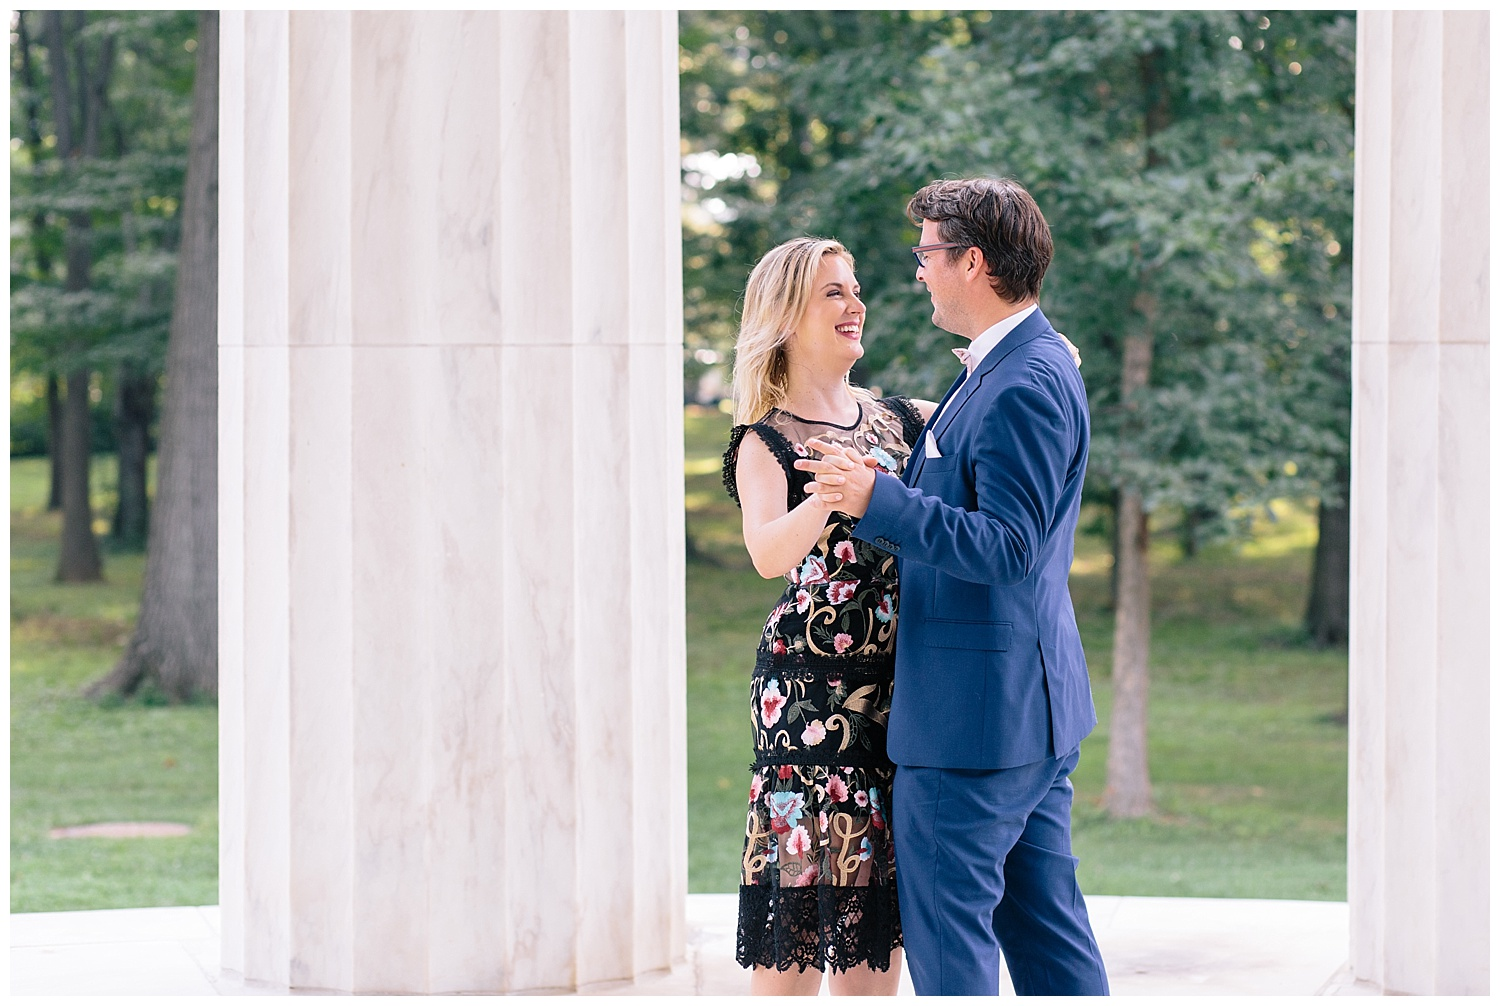 emily-belson-photography-washington-dc-engagement-emily-john-16.jpg